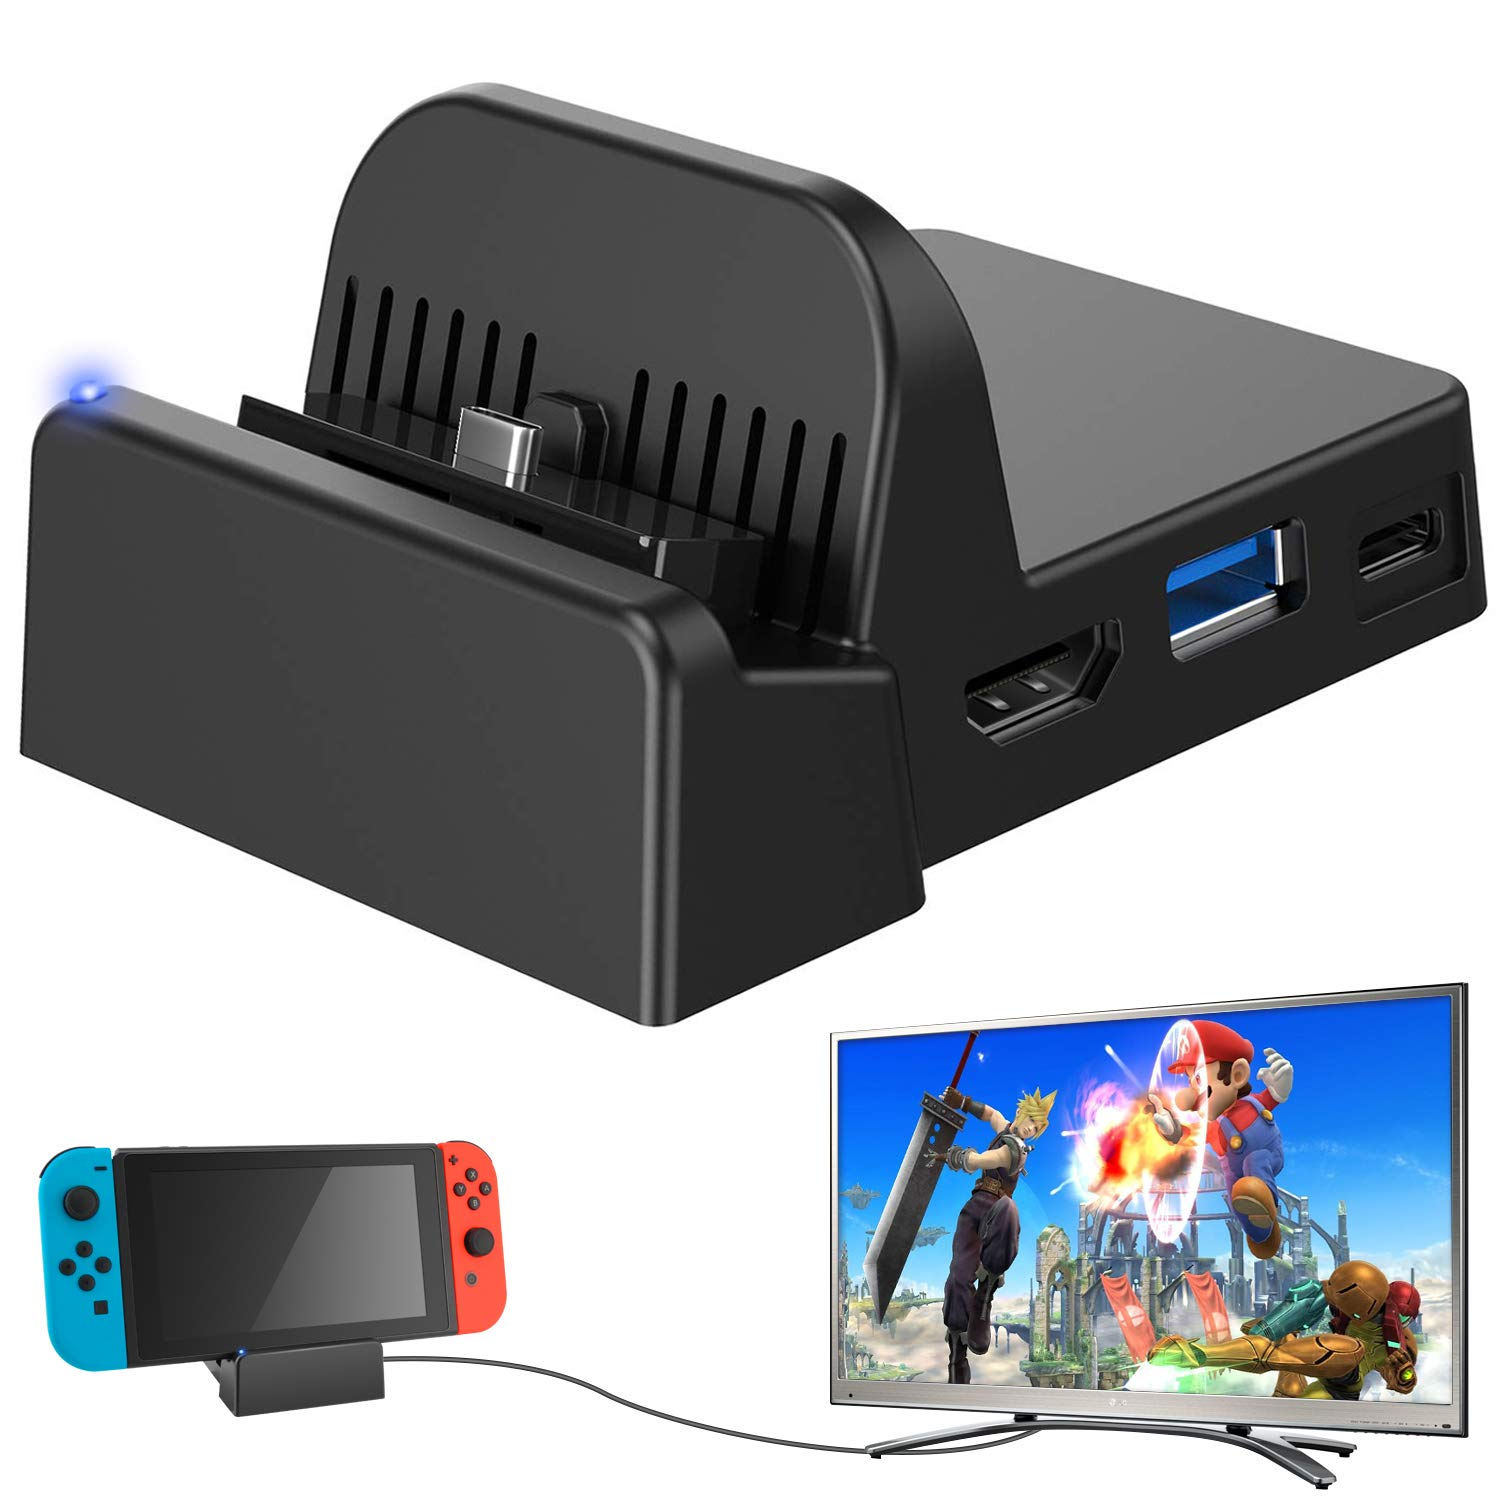 Ponkor Nintendo Switch Dock, Mini Portable Switch Docking Station HDMI 4K TV Adapter Switch Charger Dock Set Ideal Replacement for Official Nintendo Switch Charging Dock (Upgraded System) by Ponkor